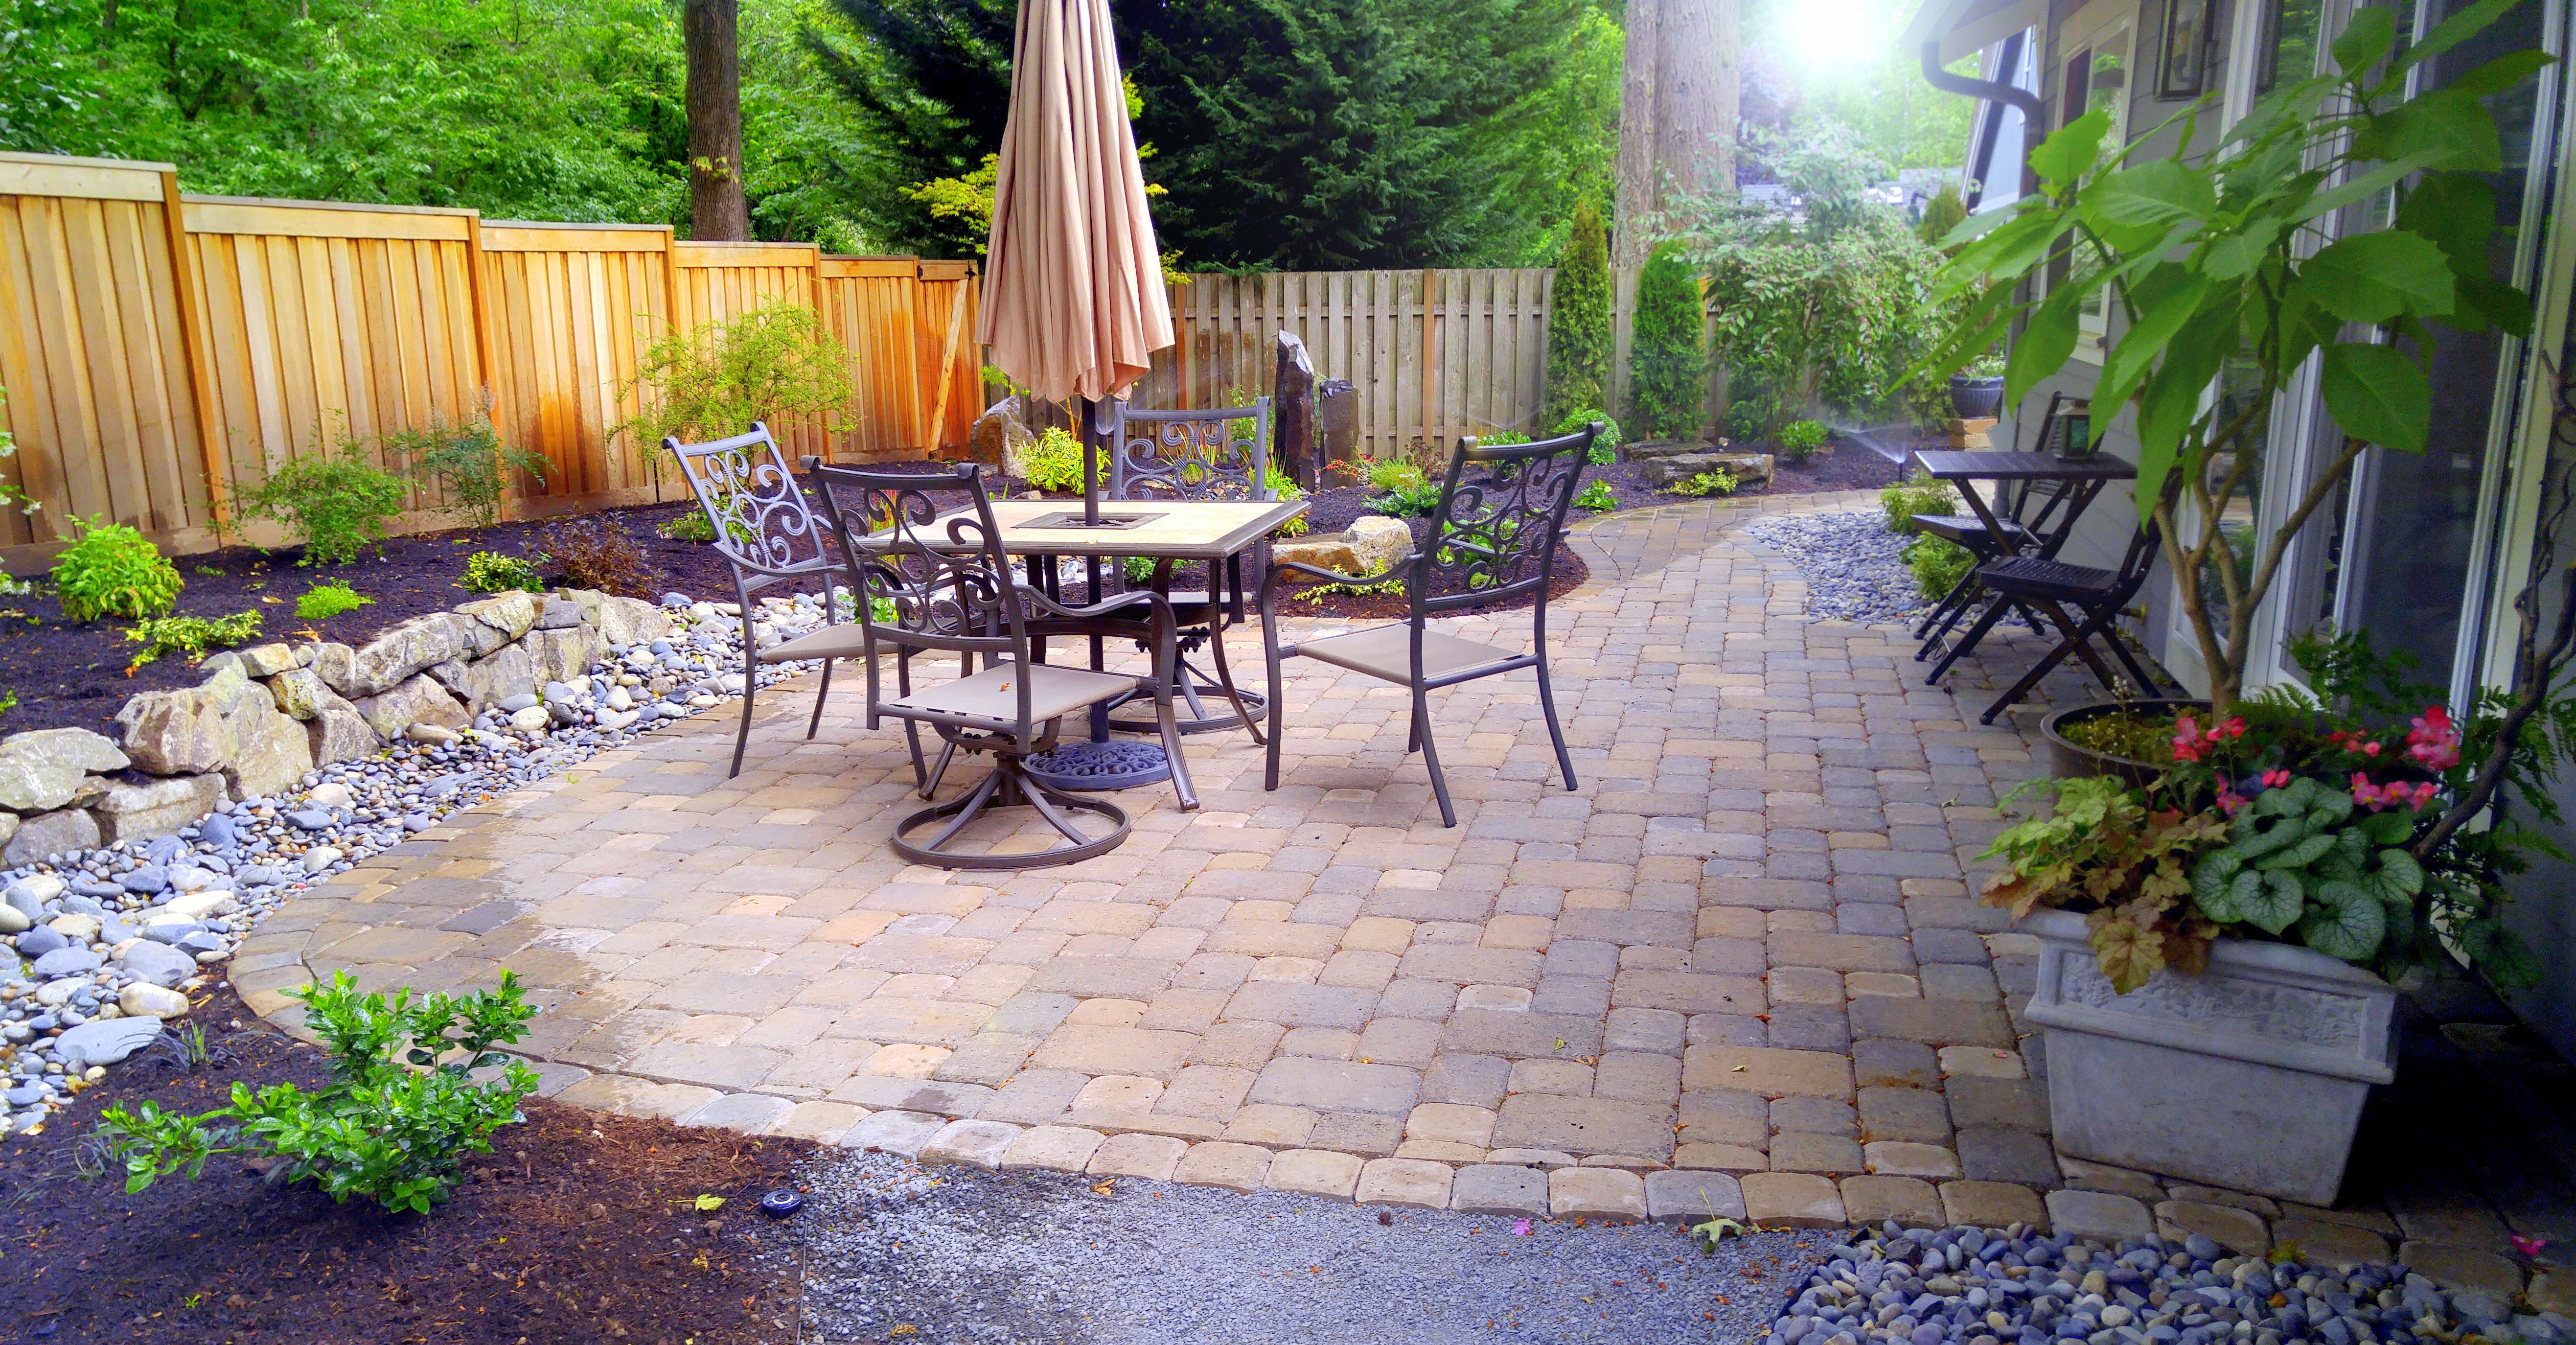 Solid Cedar Fence Paver Patio With Natural Stone Planting Bark Create An Entertainment Space Paver Patio Cedar Fence Patio